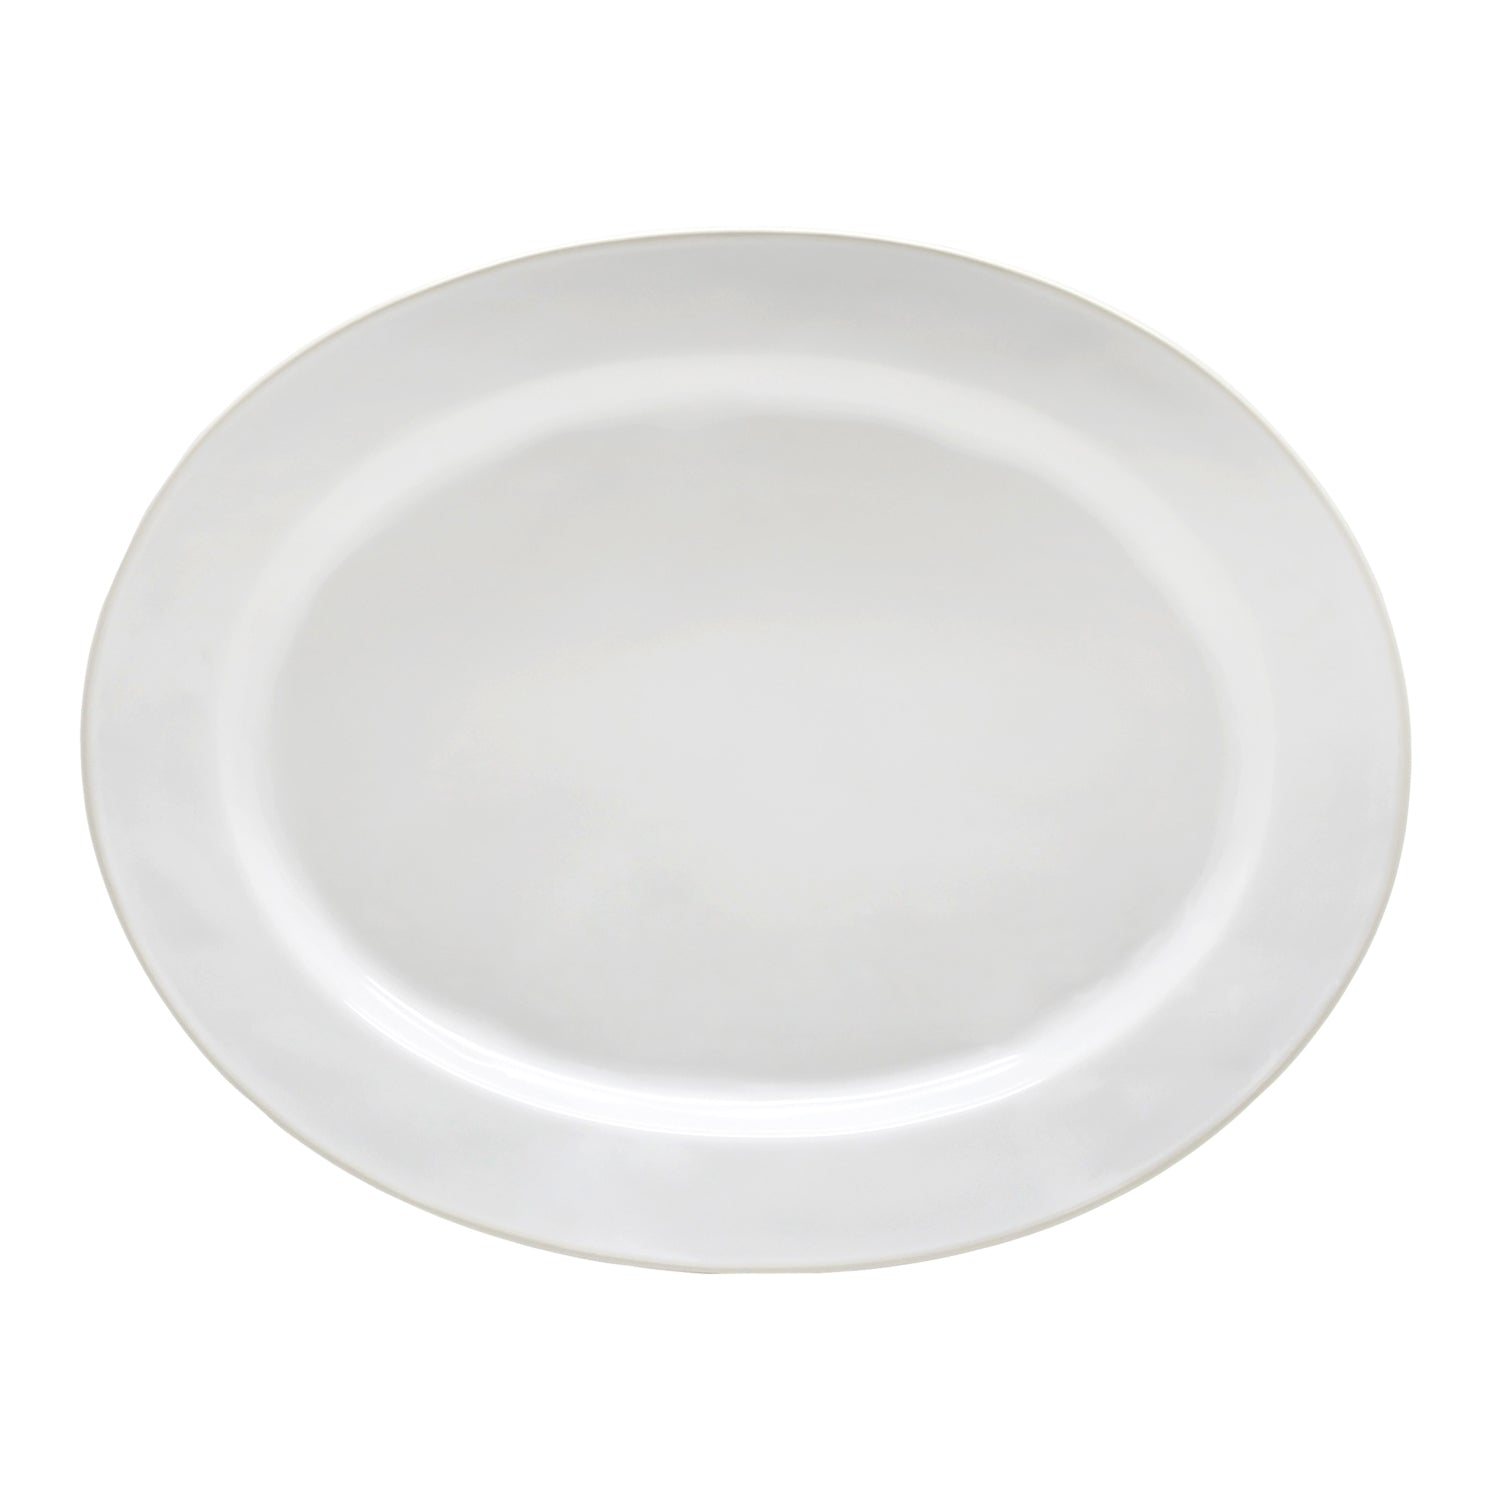 Astoria Oval Platter